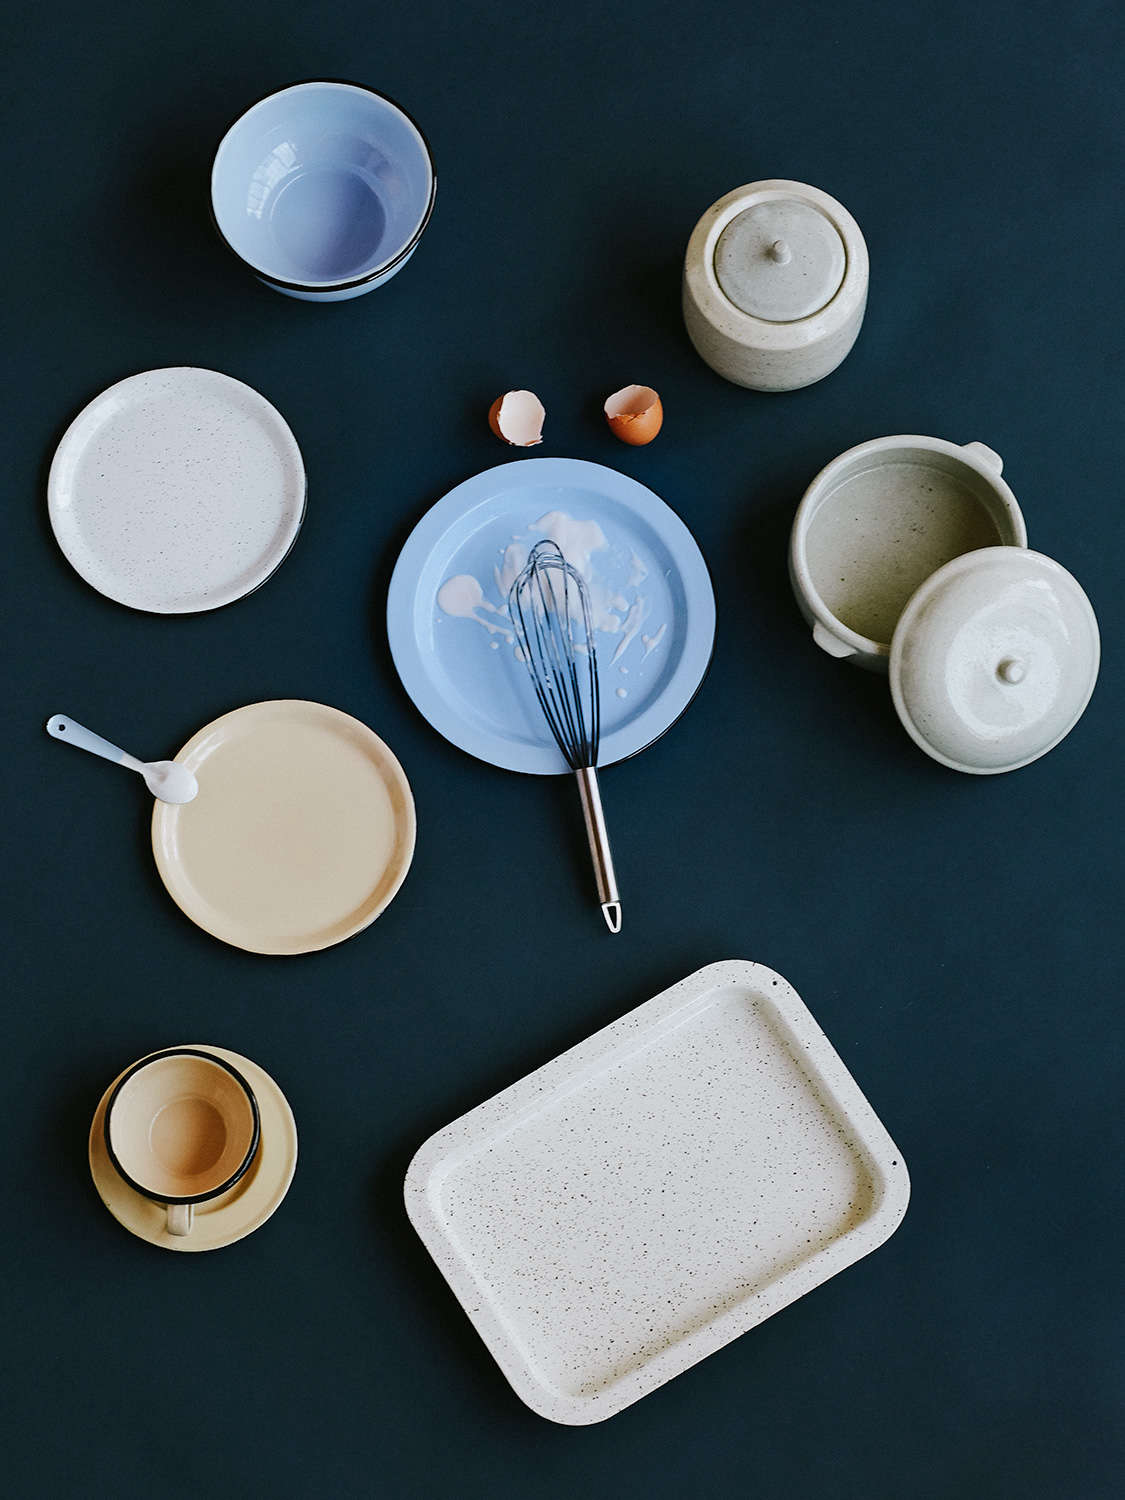 Criolla in Colombia: Classic Enamelware for the Modern Home